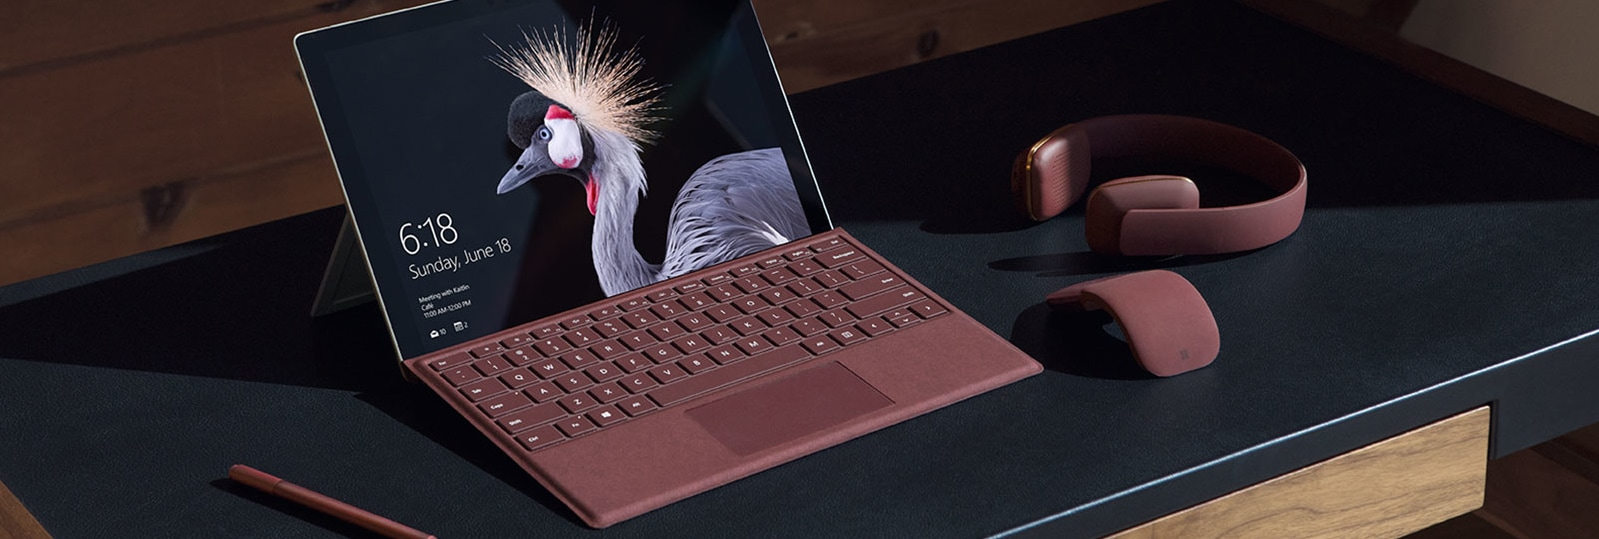 Surface Pro, Surface Mouse, and Surface Pen on a desk